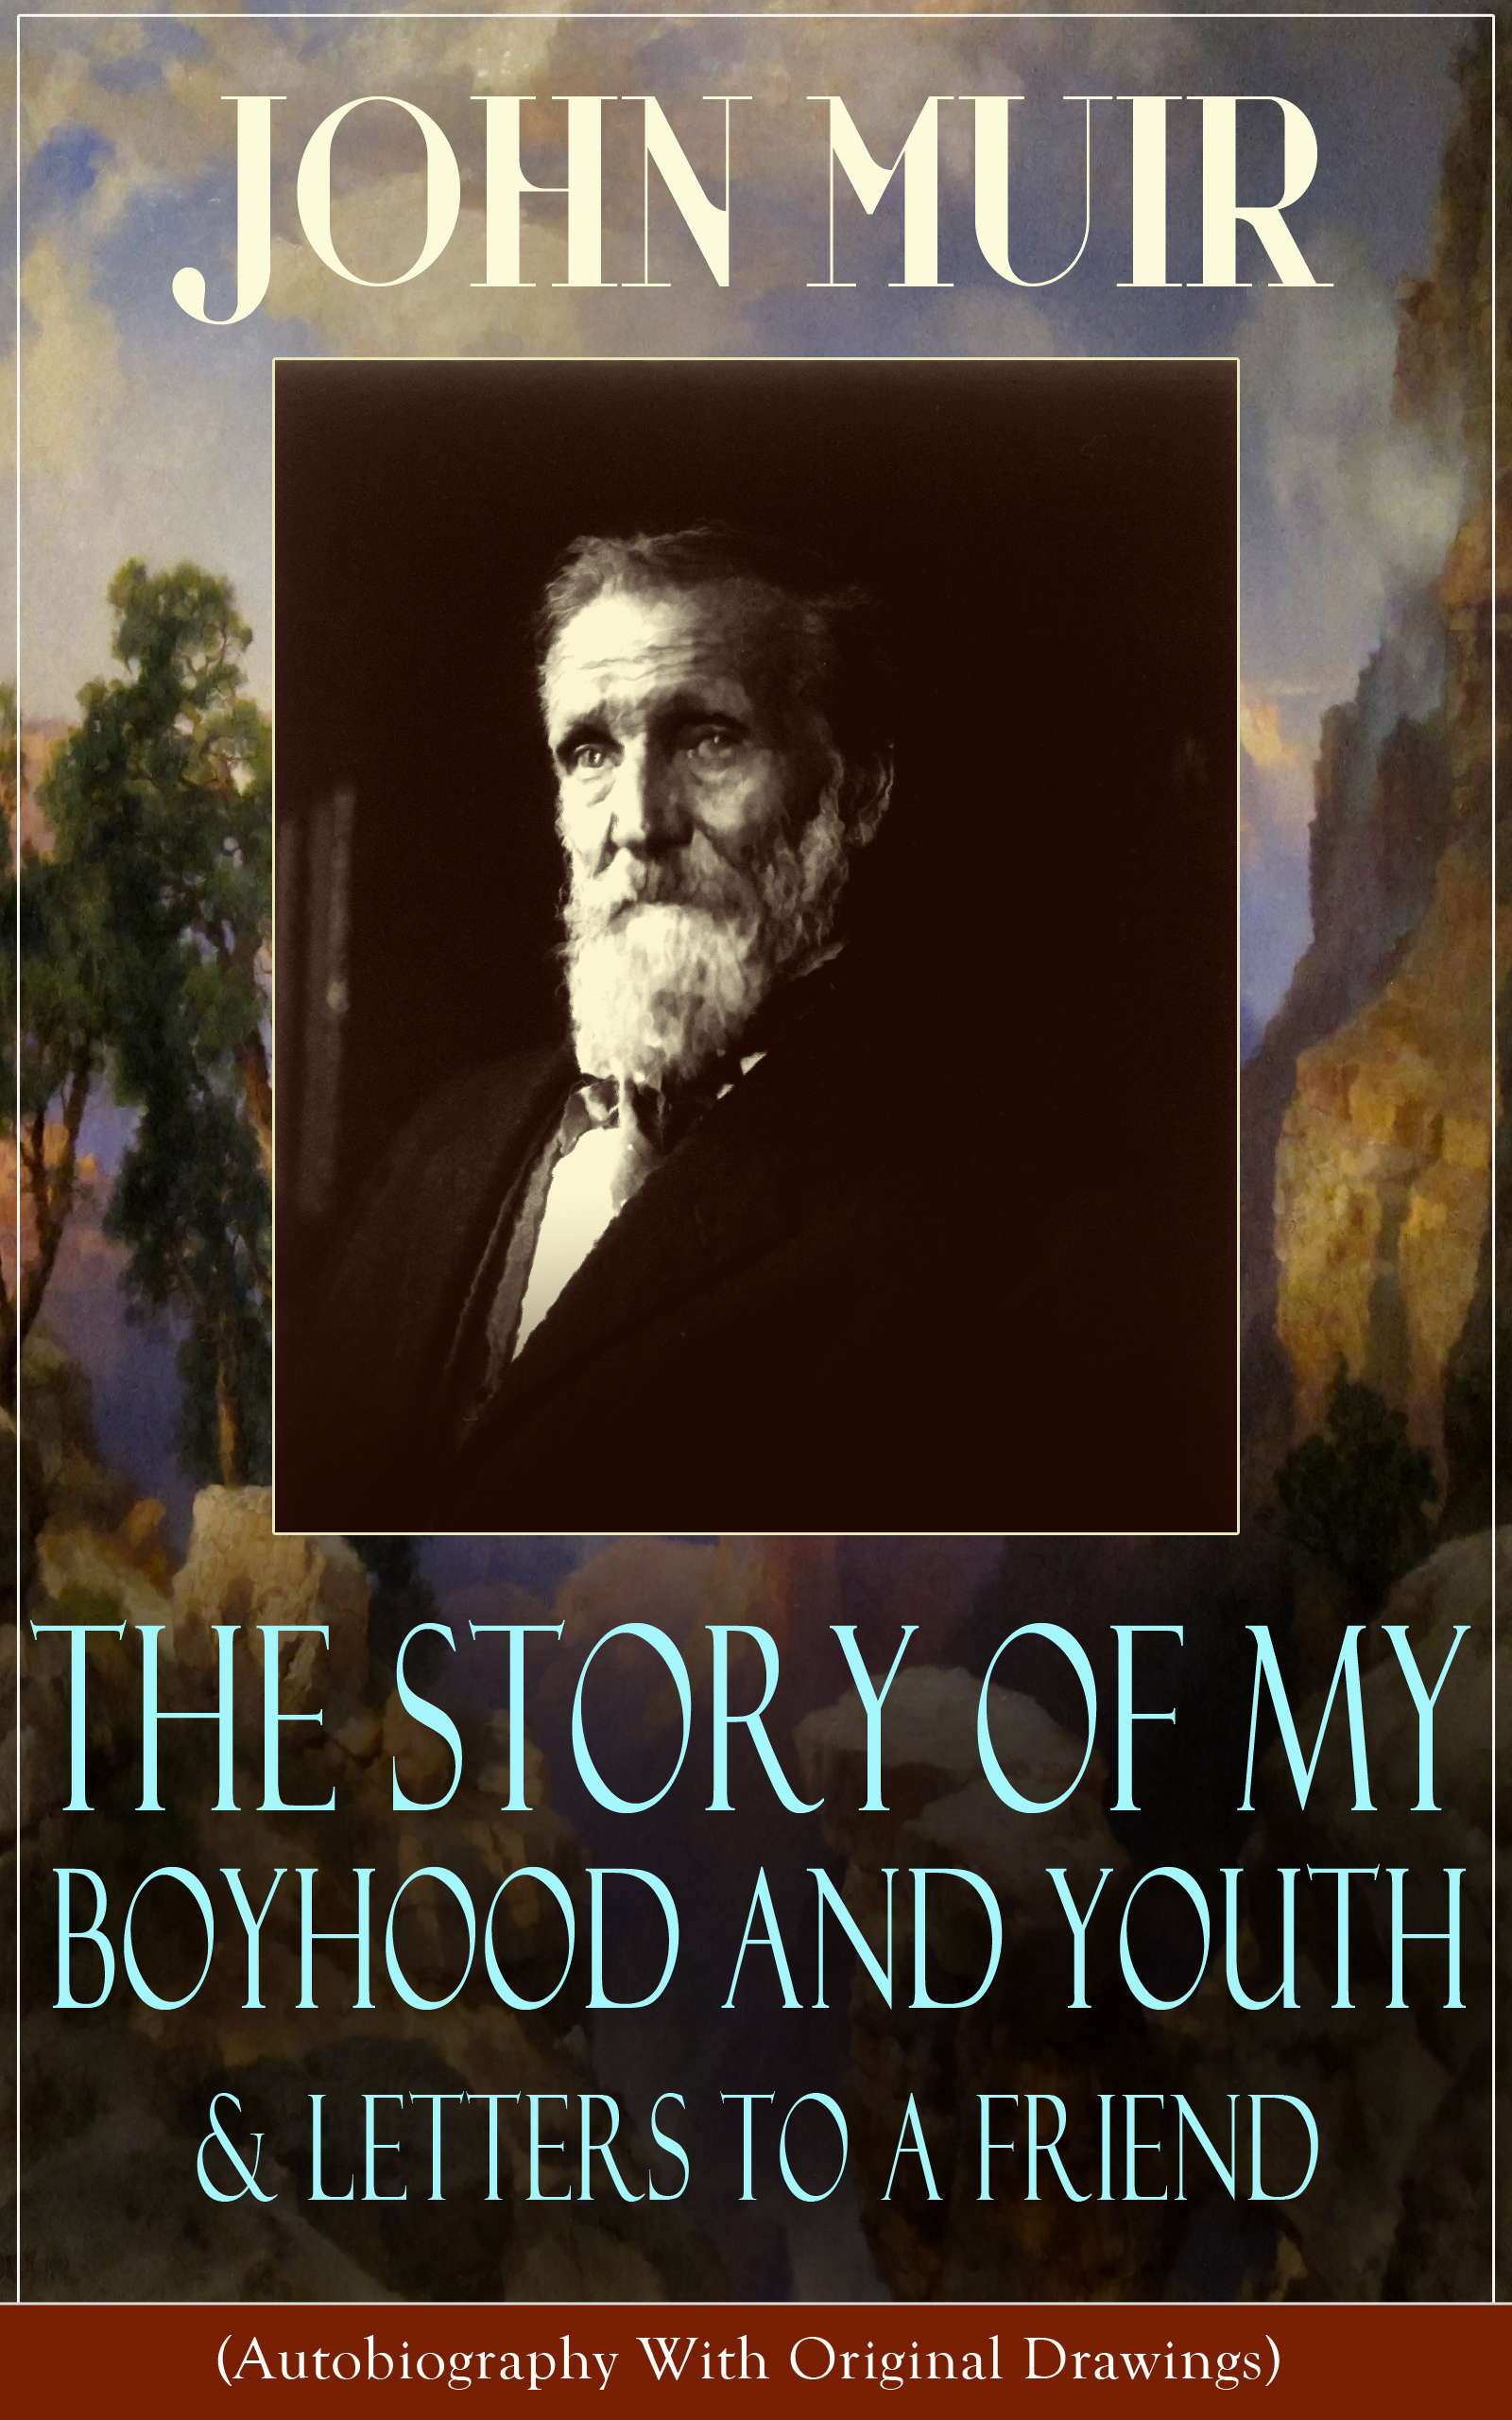 John Muir John Muir: The Story of My Boyhood and Youth & Letters to a Friend suzanne saunders taylor love letters to and from a monk my aunt s letters and his responses